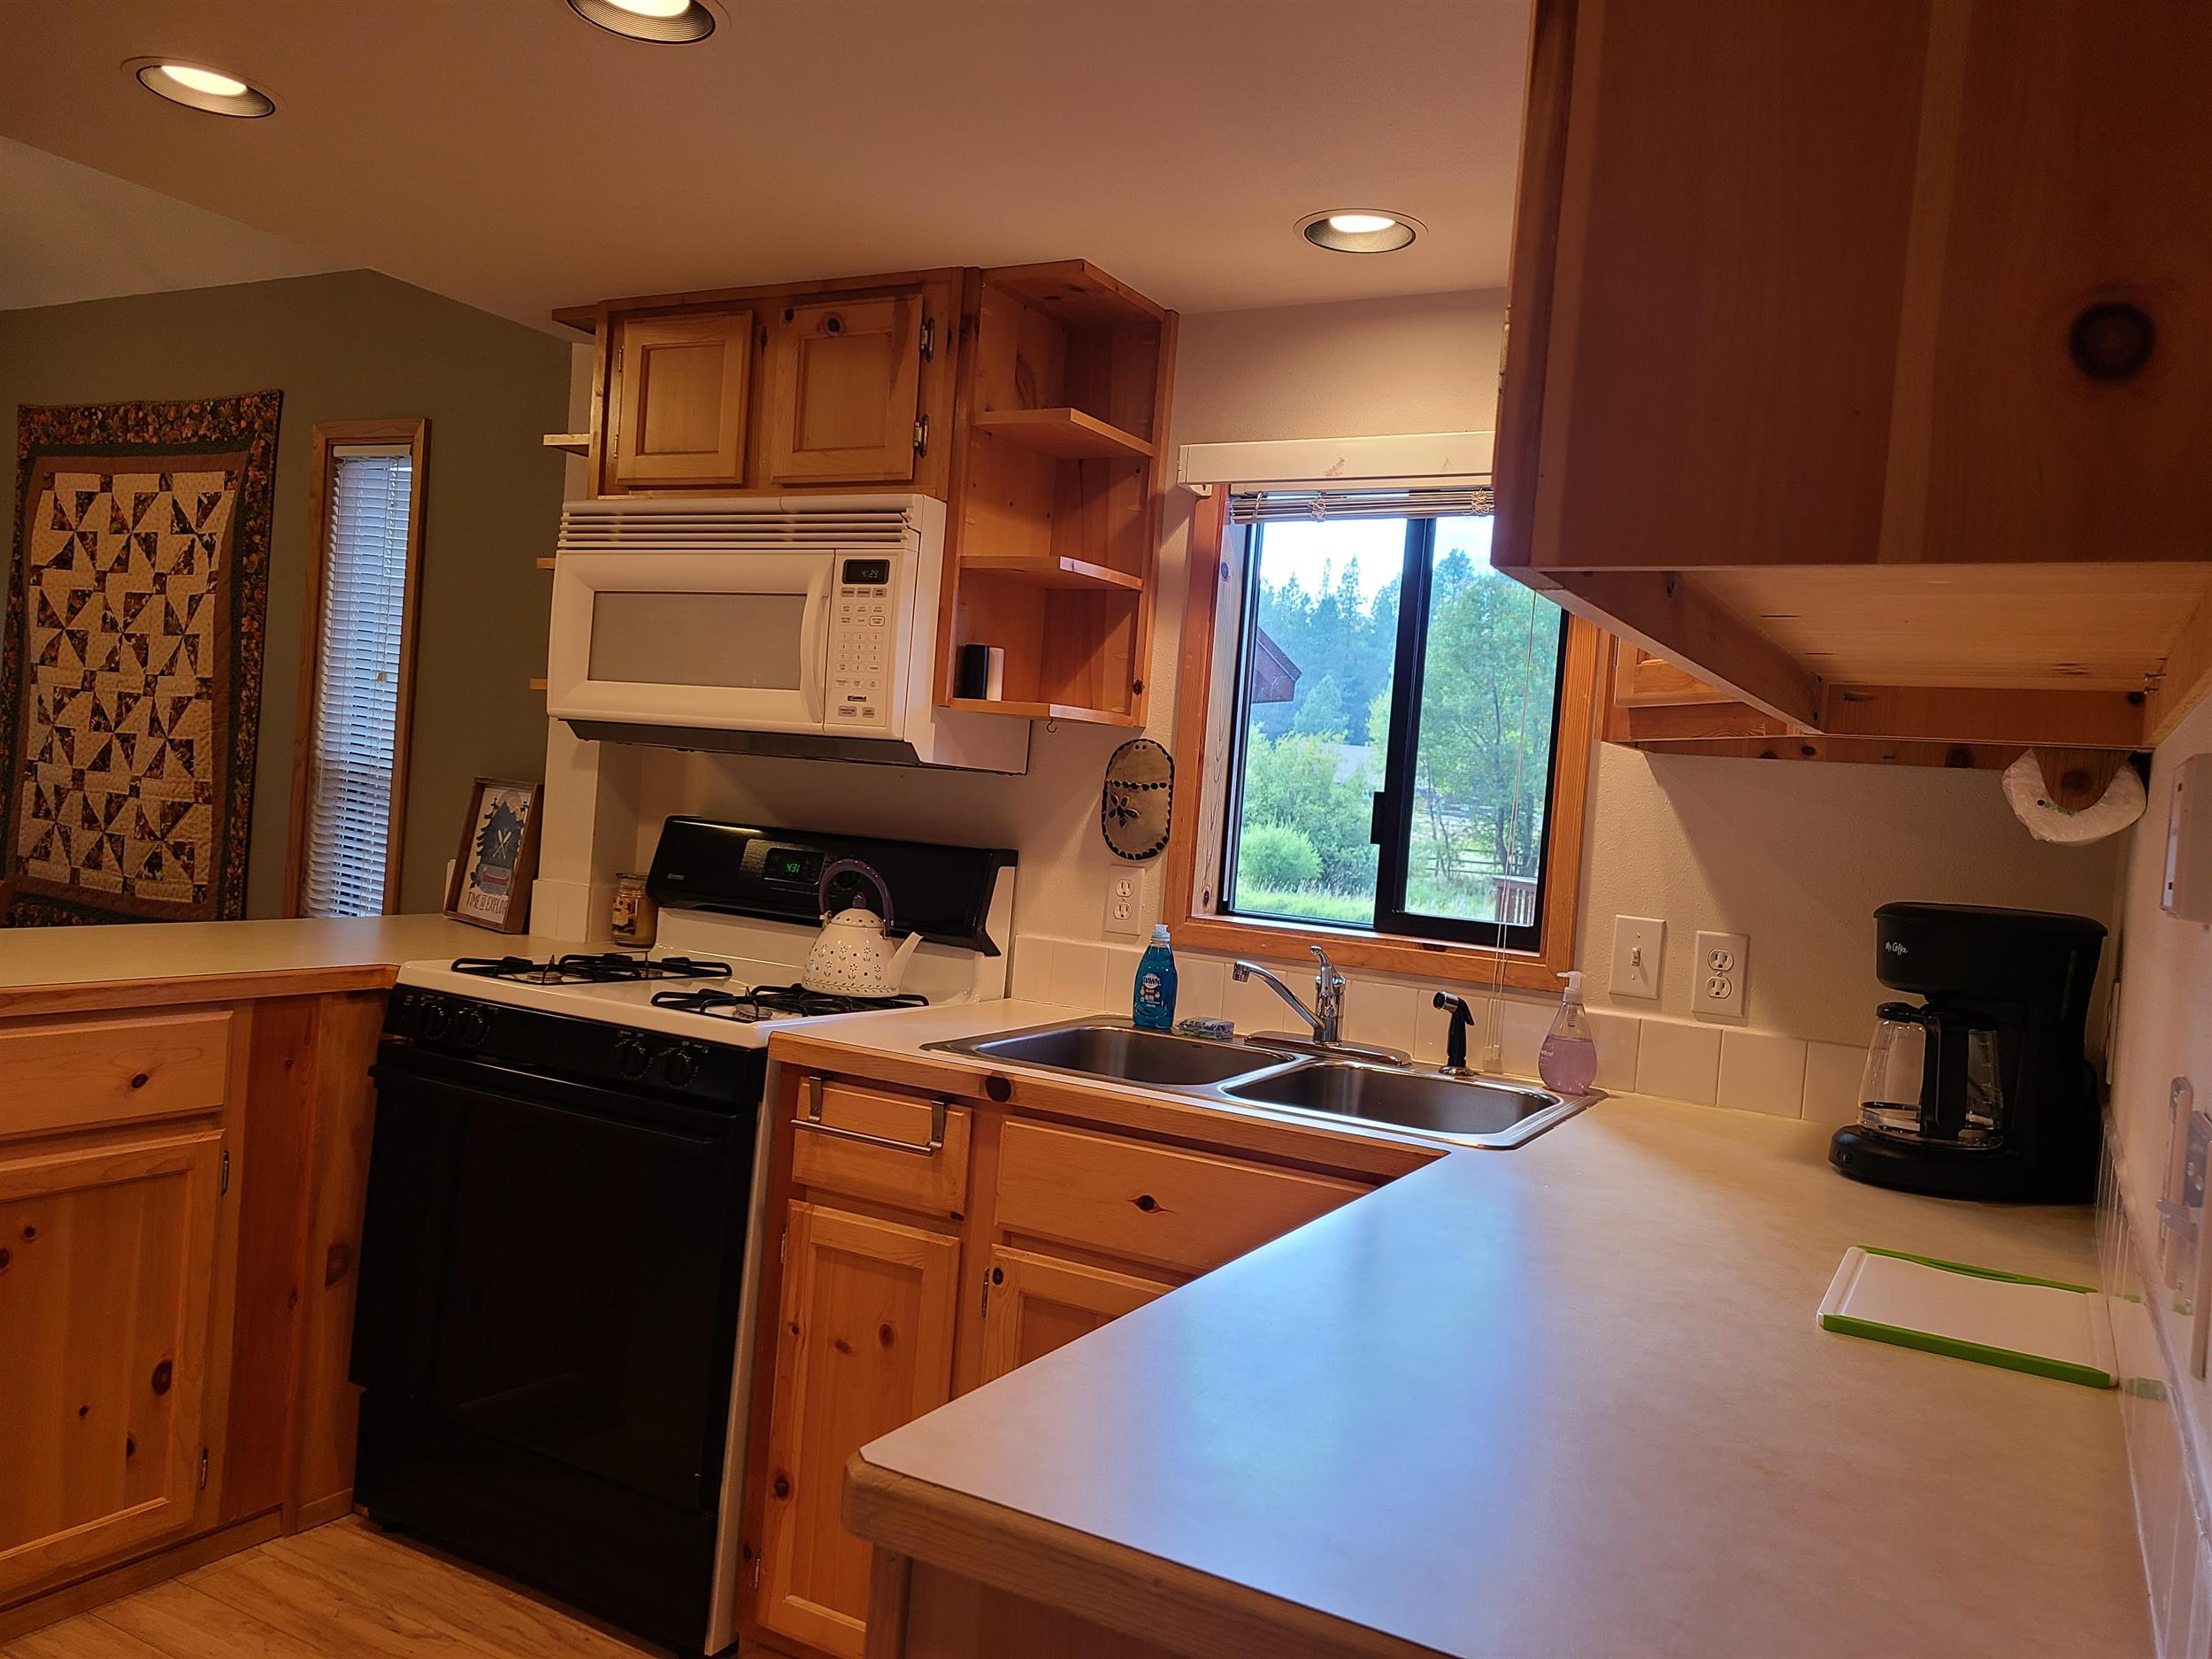 Cook up a delicious family dinner in the kitchen of Cottonwood Cabin at Cold Springs Resort & RV Park in Camp Sherman, Oregon